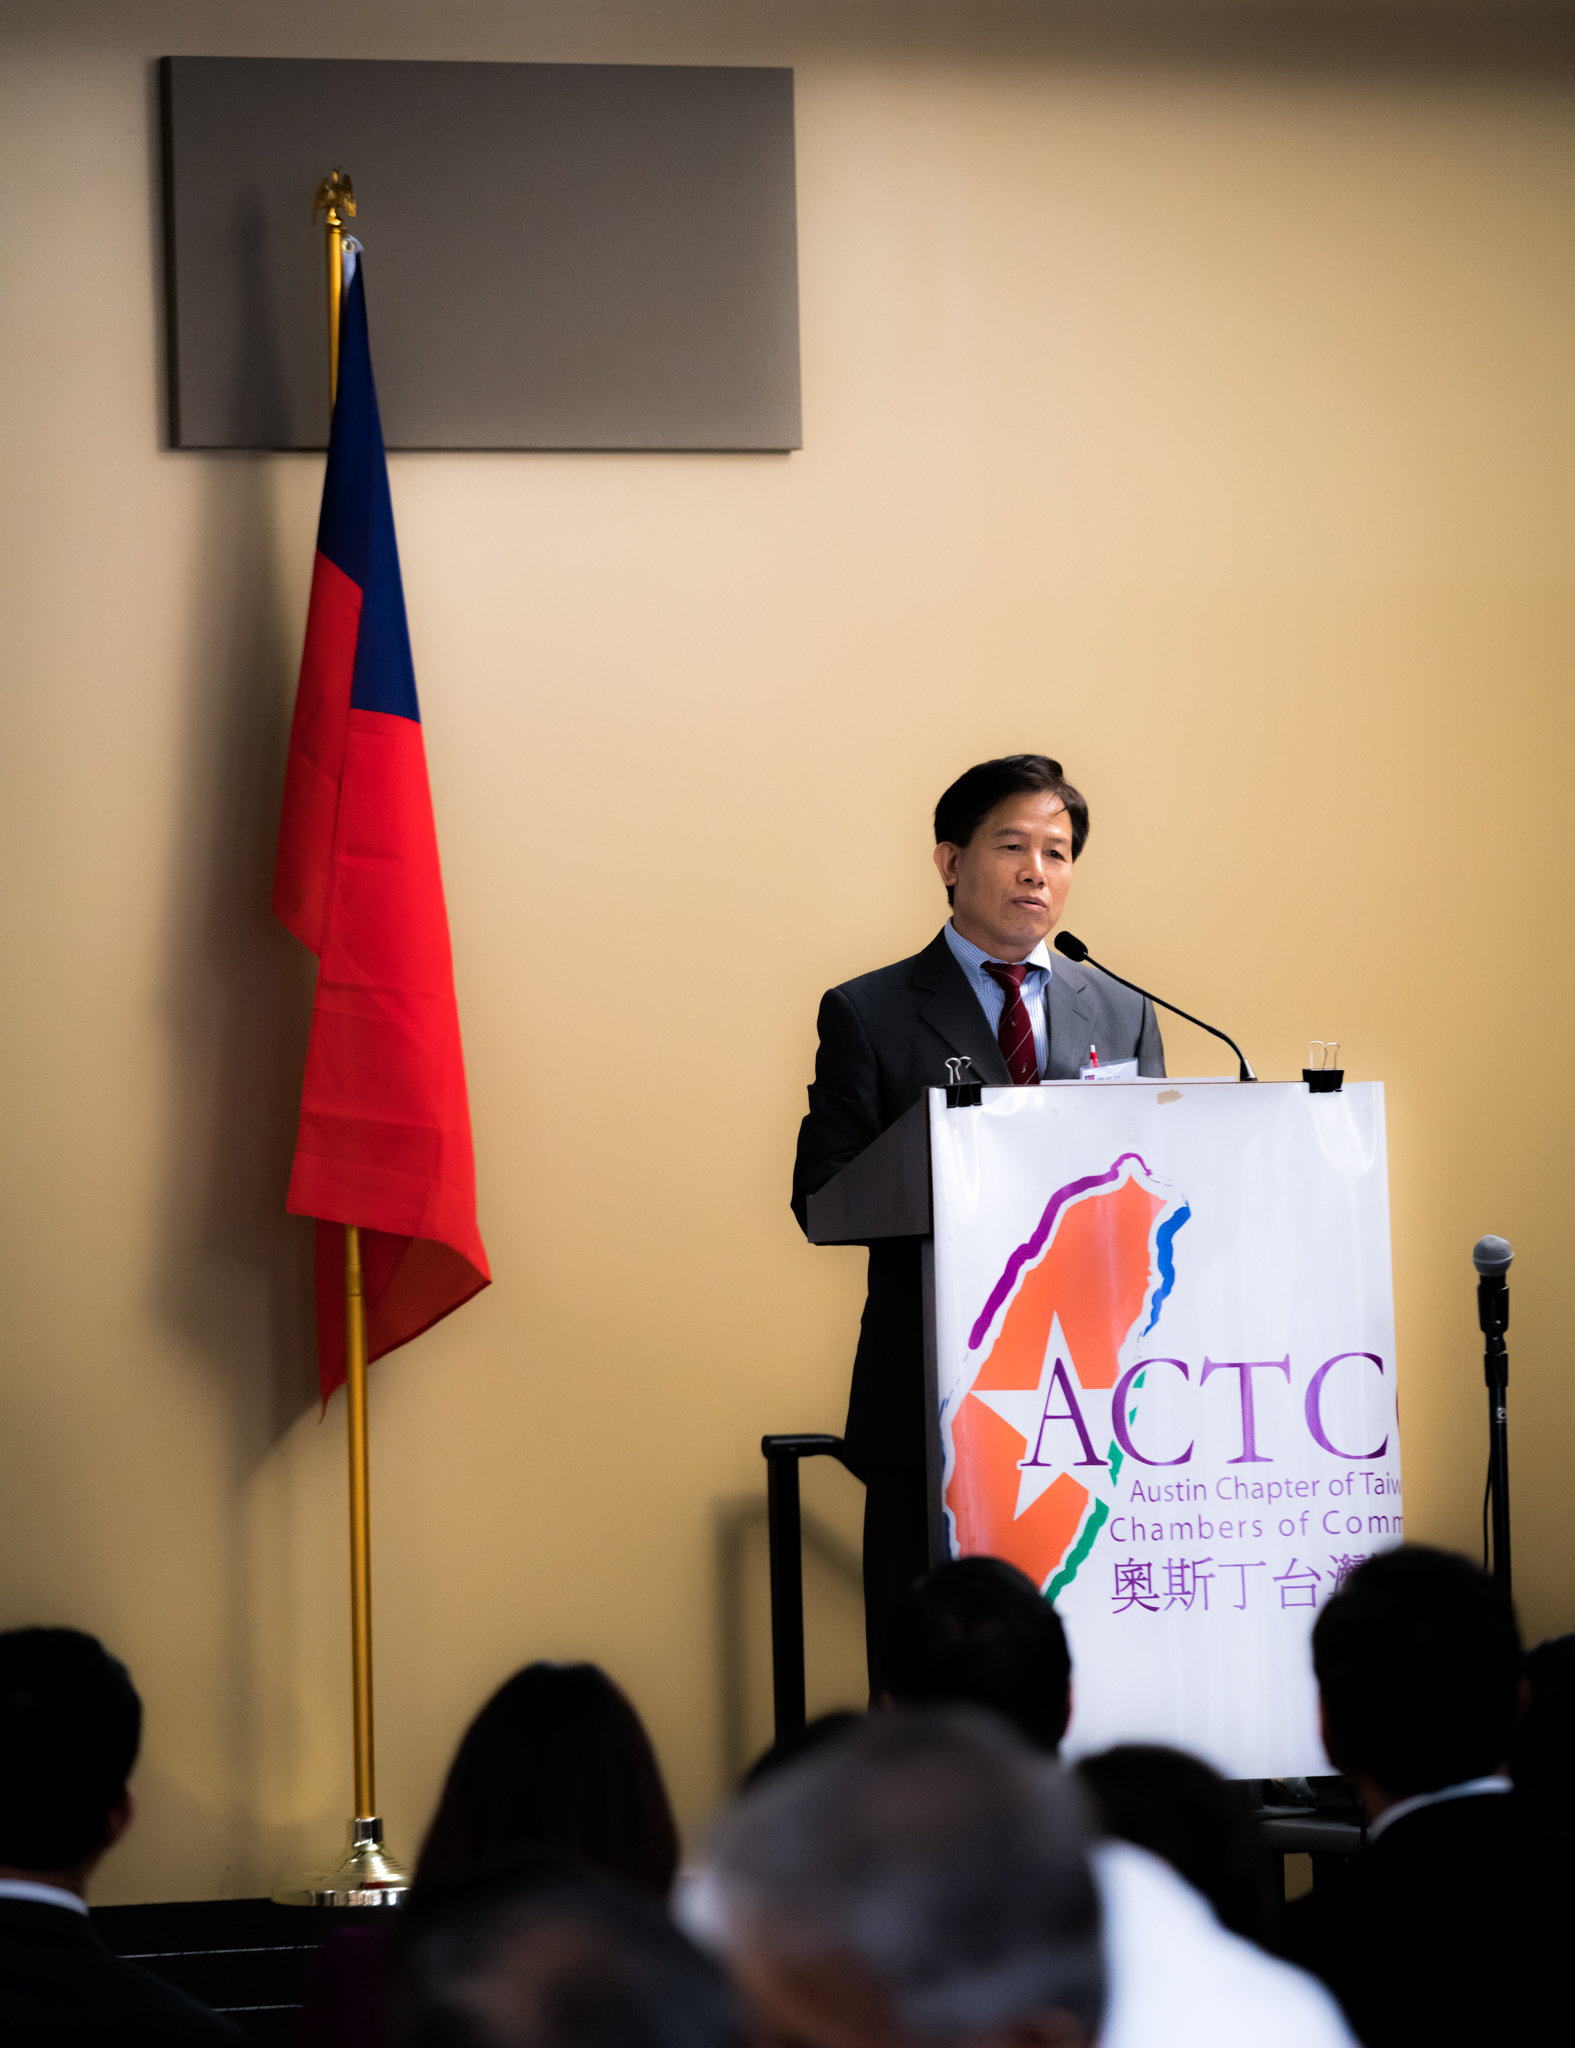 https://0201.nccdn.net/1_2/000/000/0c6/995/29OCT2016---ACTCC-TW-National-Day-Celebration-at-AARC-1.JPG